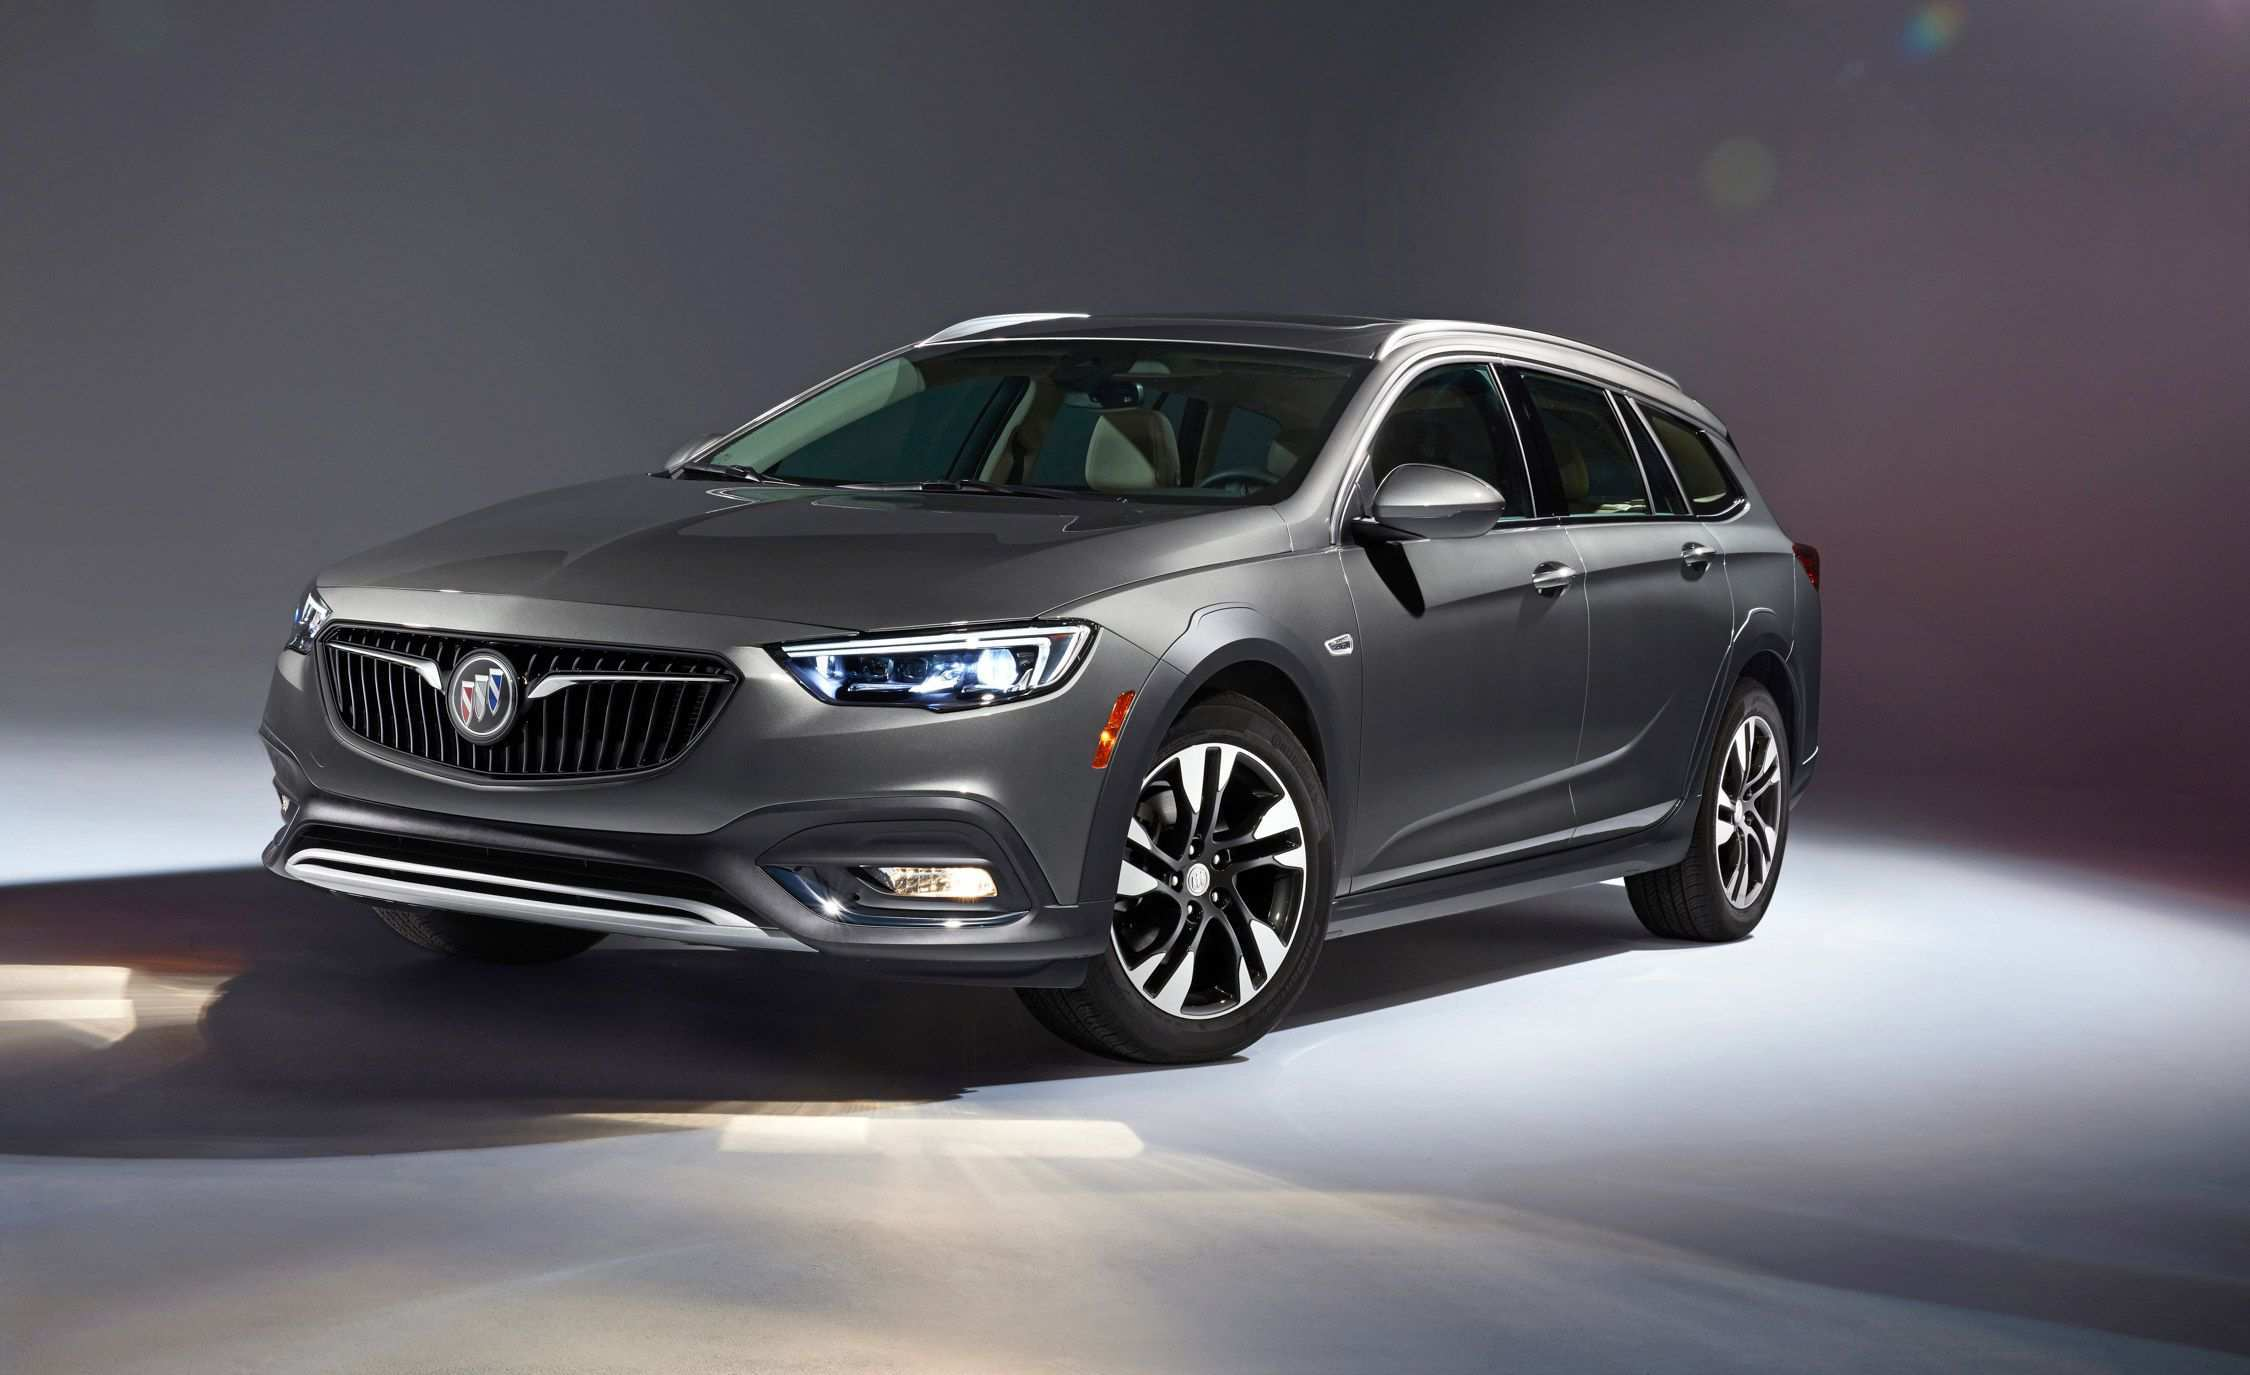 74 Great New 2019 Buick Regal Tourx Redesign Redesign and Concept with New 2019 Buick Regal Tourx Redesign